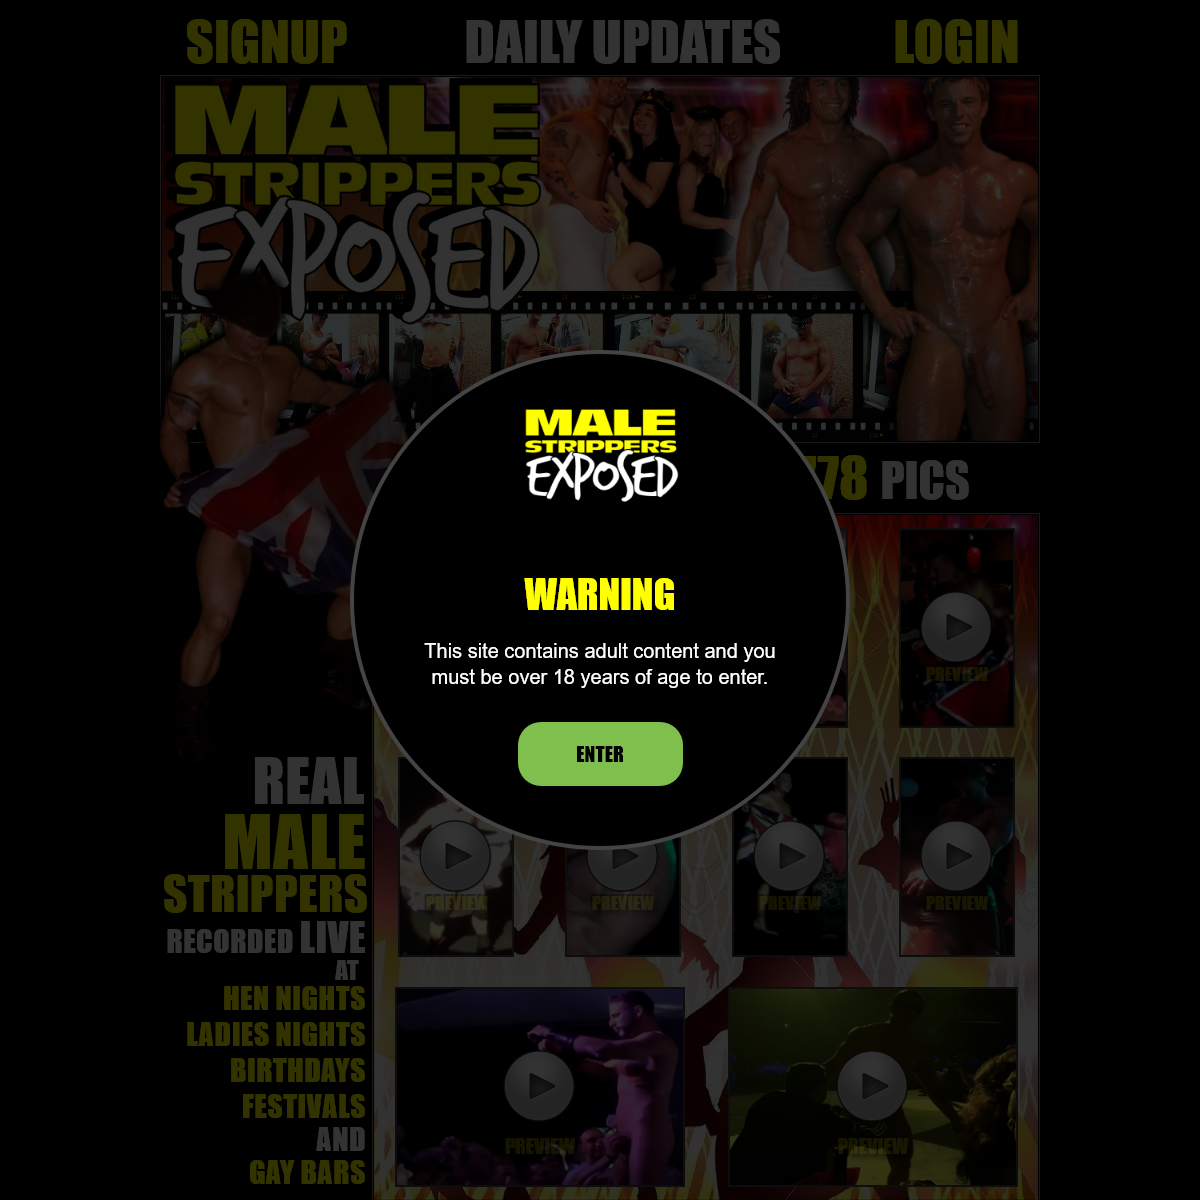 A complete backup of www.malestrippersexposed.com